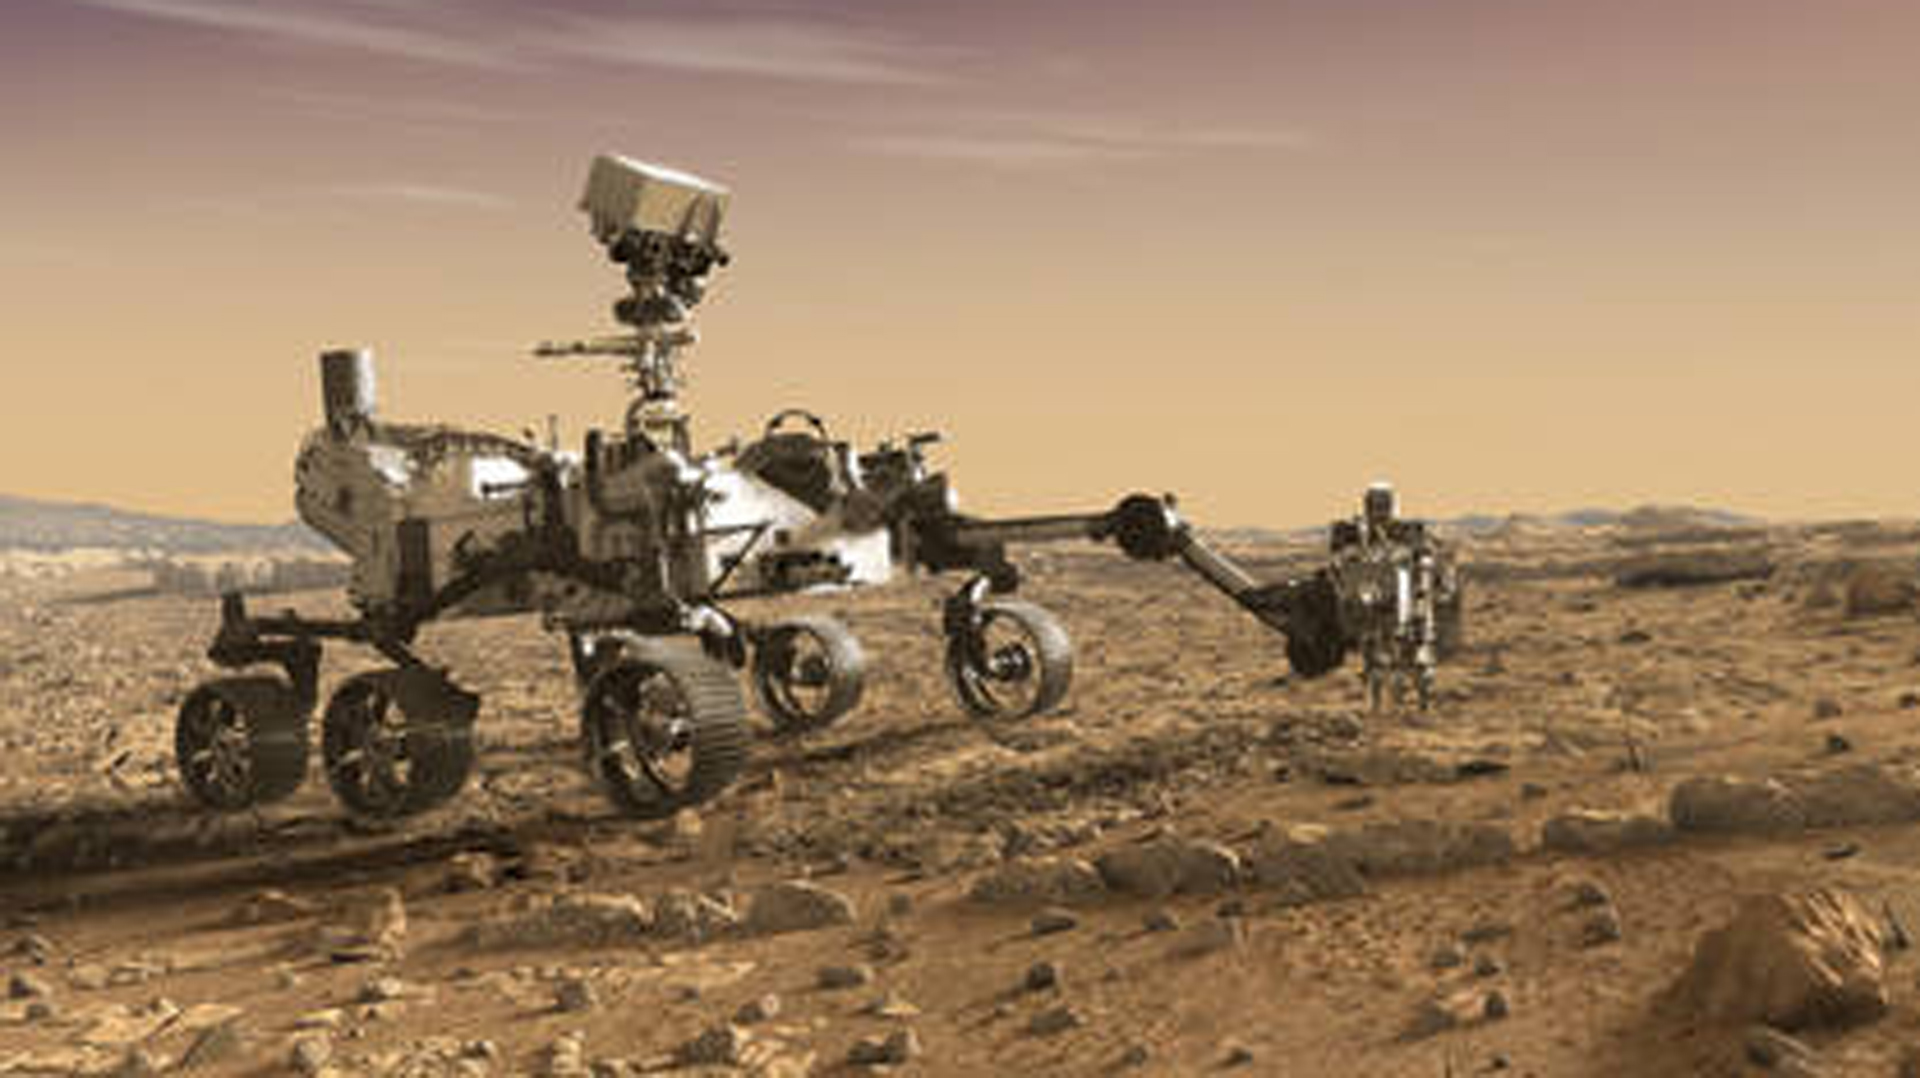 A rendering of what the Mars 2020 rover would look like. (Credit: NASA)